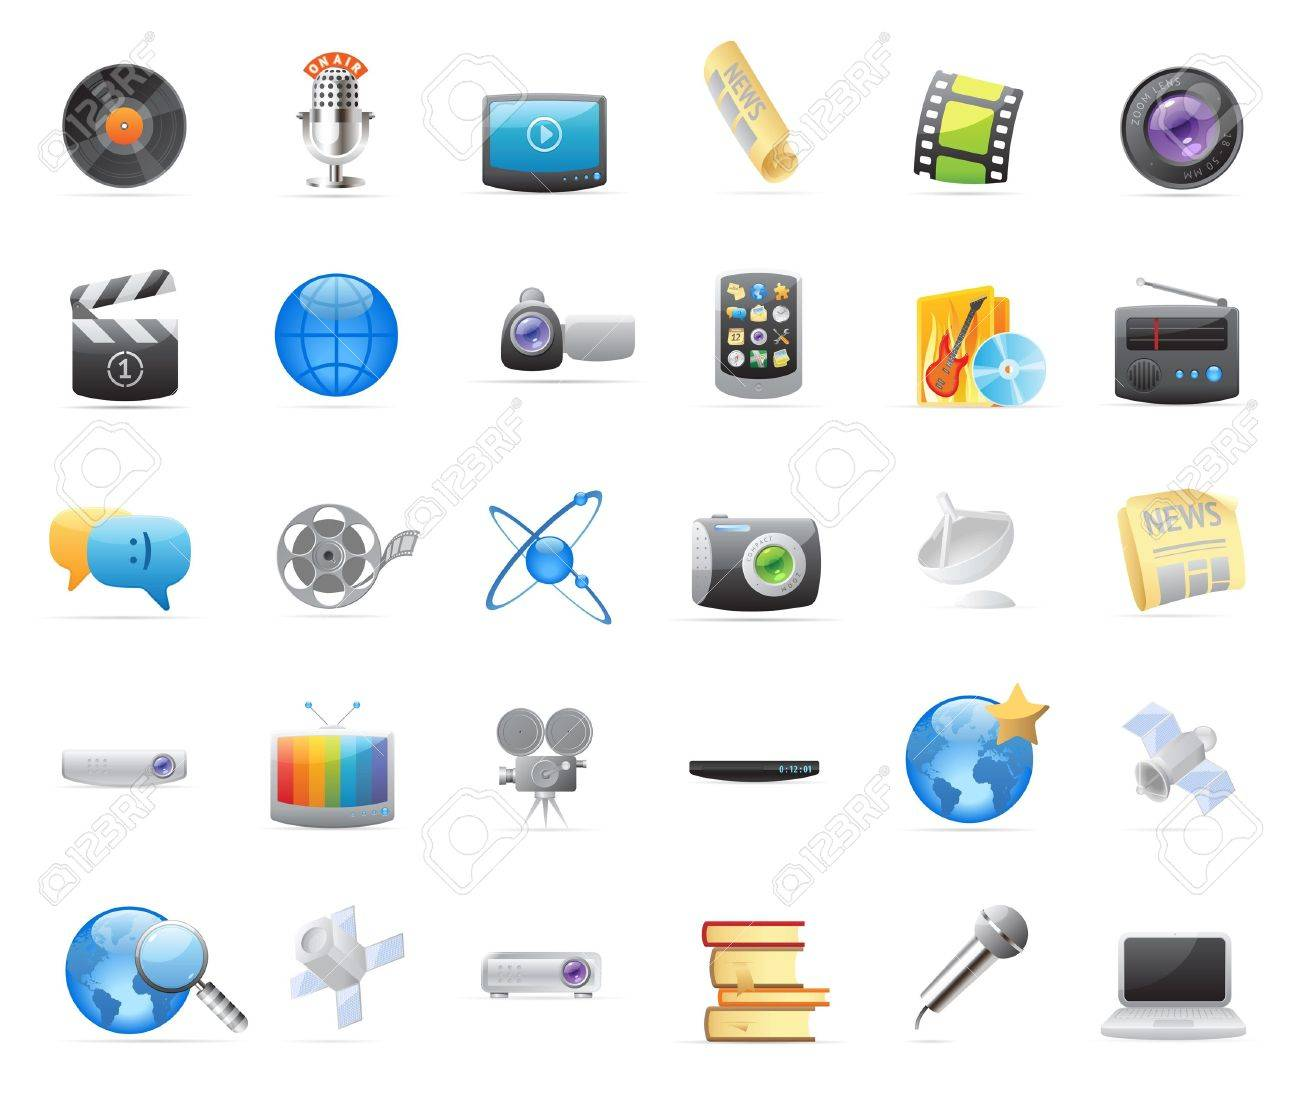 30 detailed vector icons for media. - 12116495